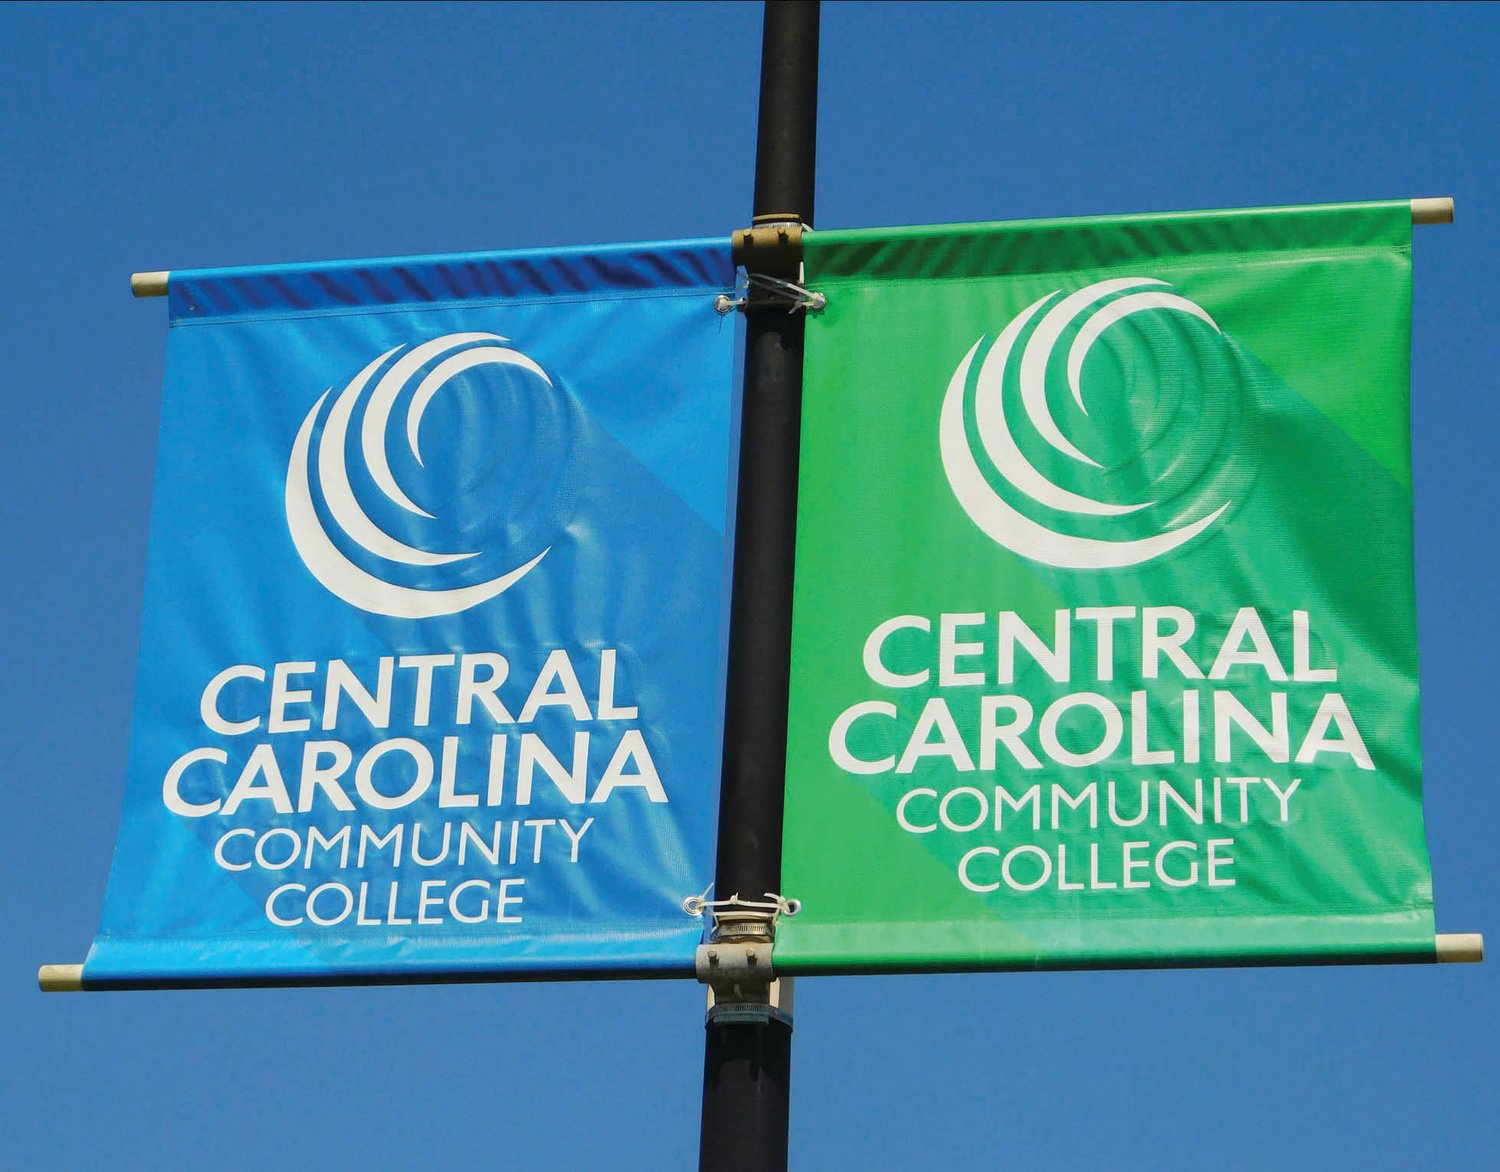 Central Carolina Community College reported last week that it had record enrollment this year across its three campuses.